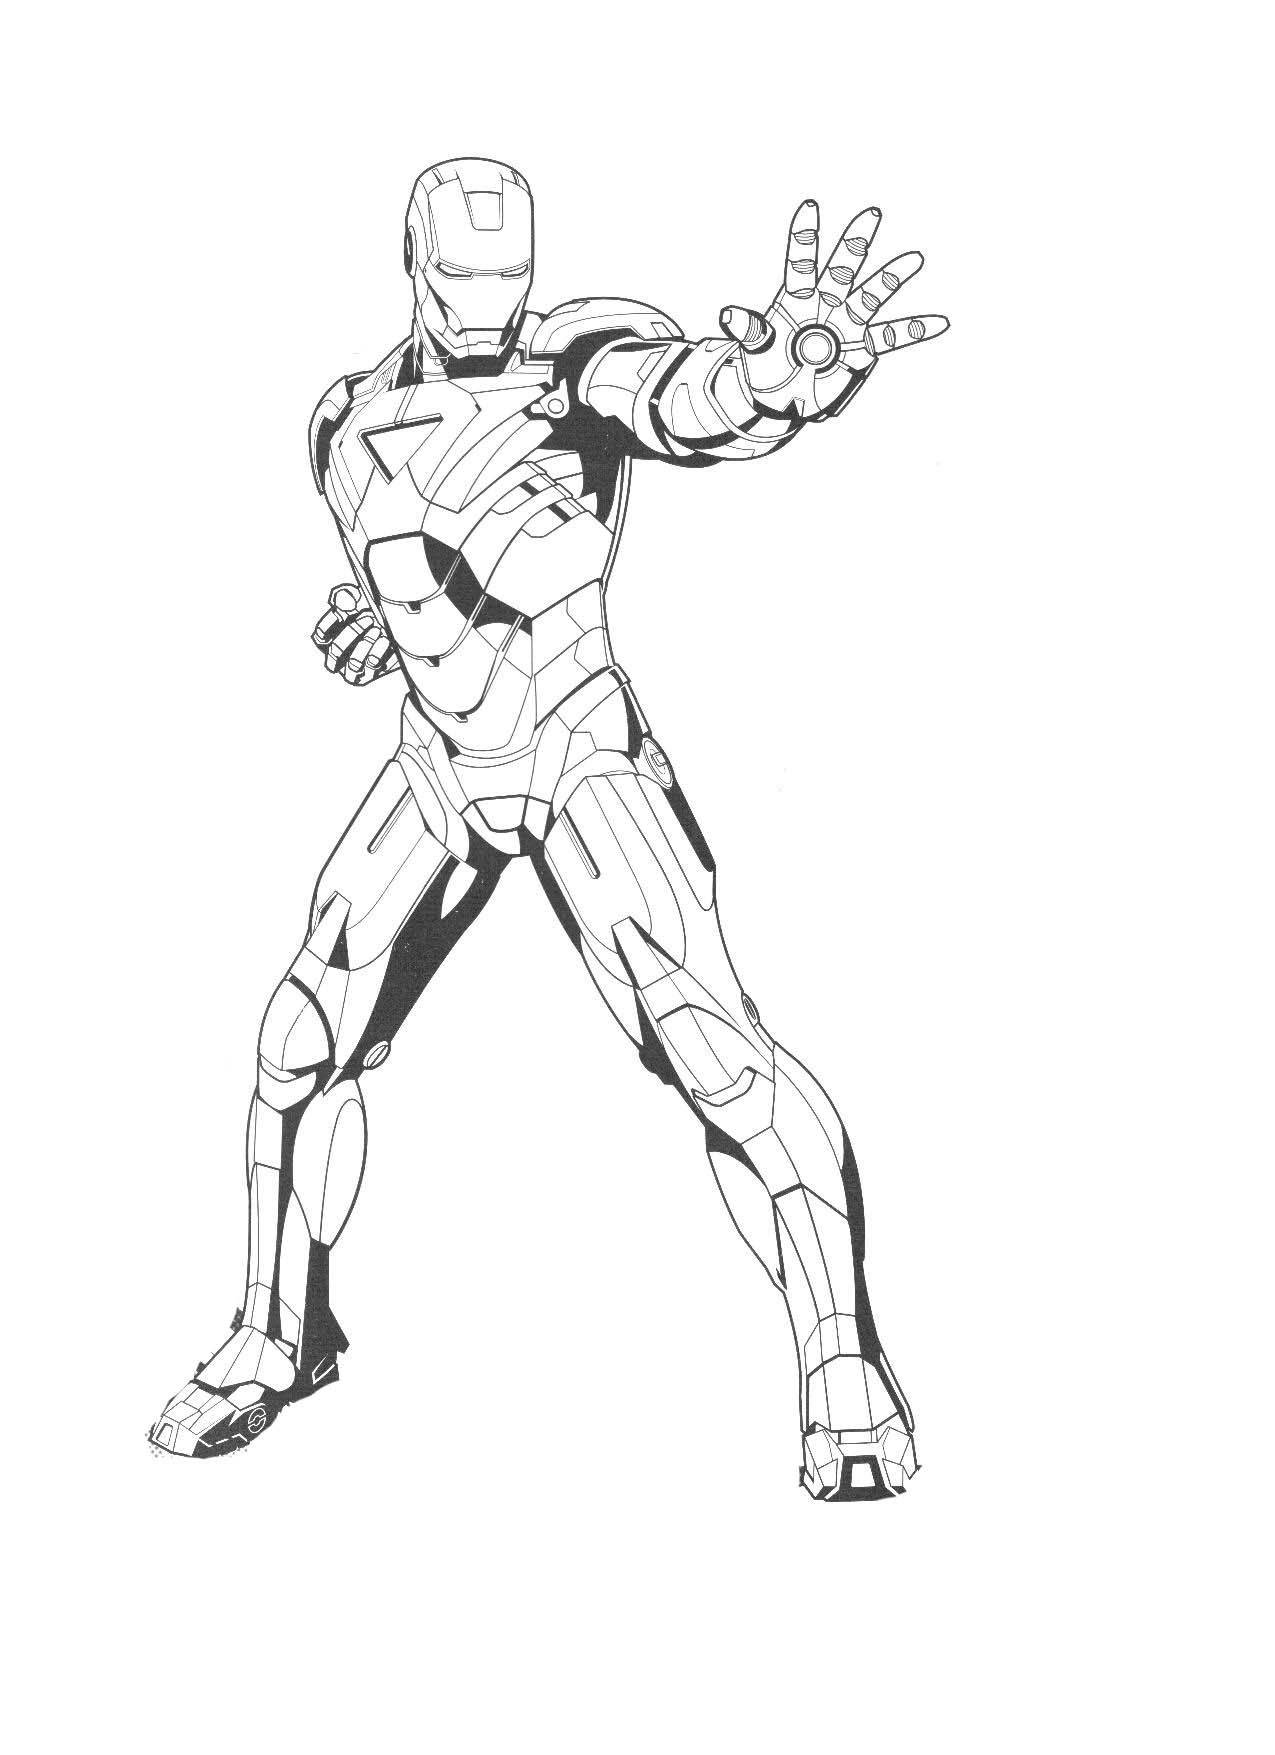 Special Iron Man Coloring Pages | For the Kiddos | Pinterest